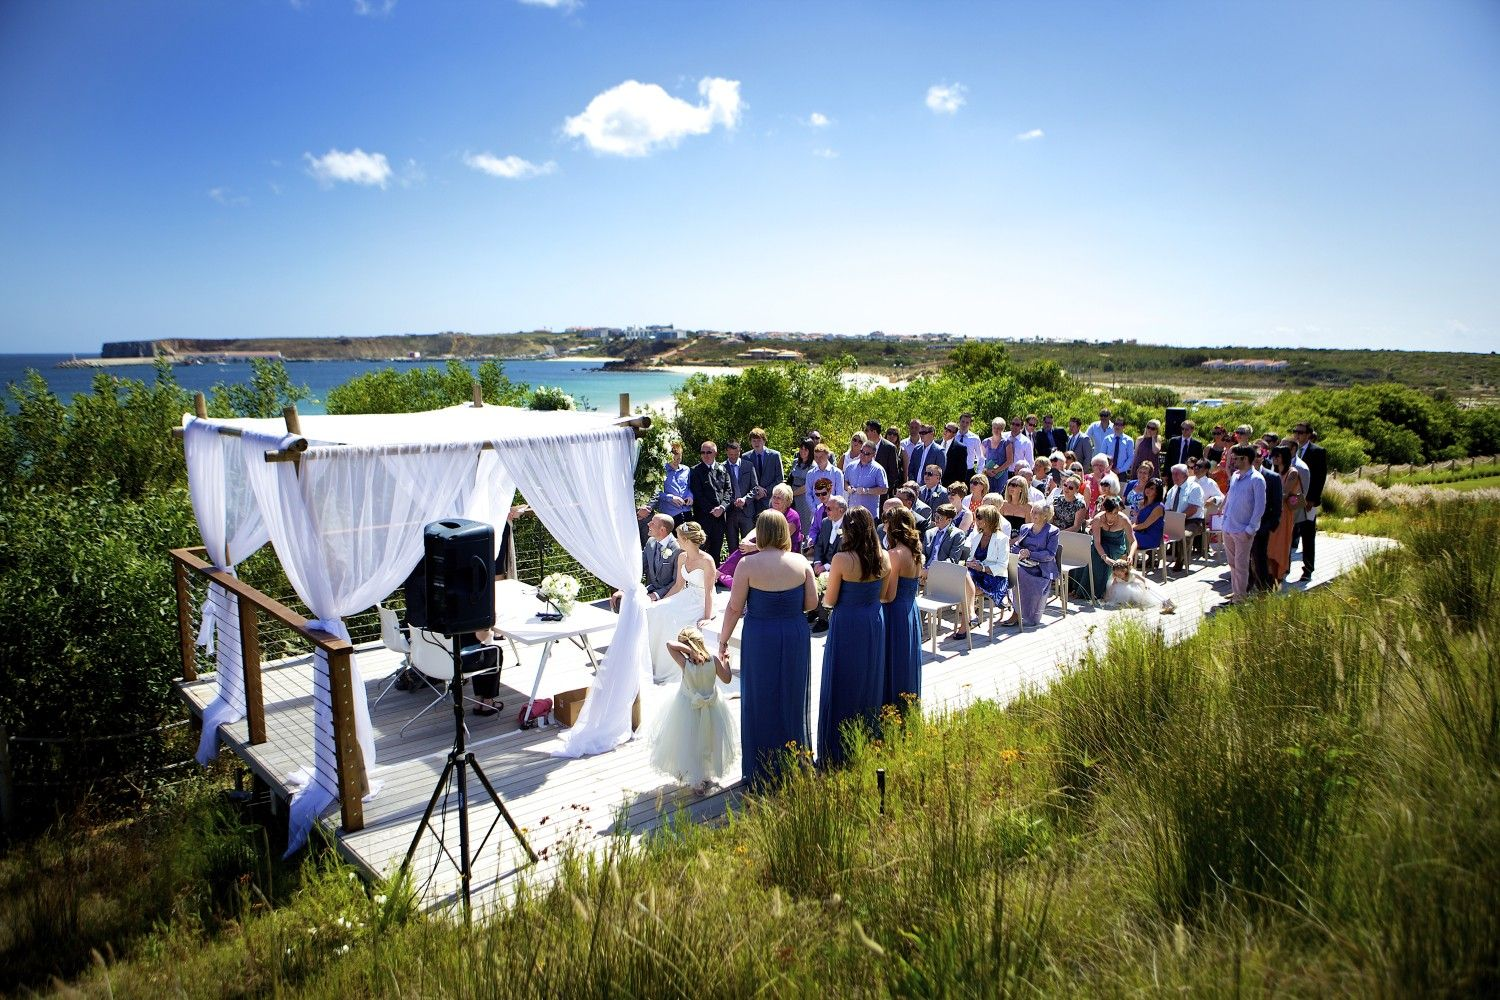 Wedding At Martinhal Beach Resort Hotel In Sagres Algarve Portugal Luxury Family Holidays Hotels And Resorts Portugal Holidays